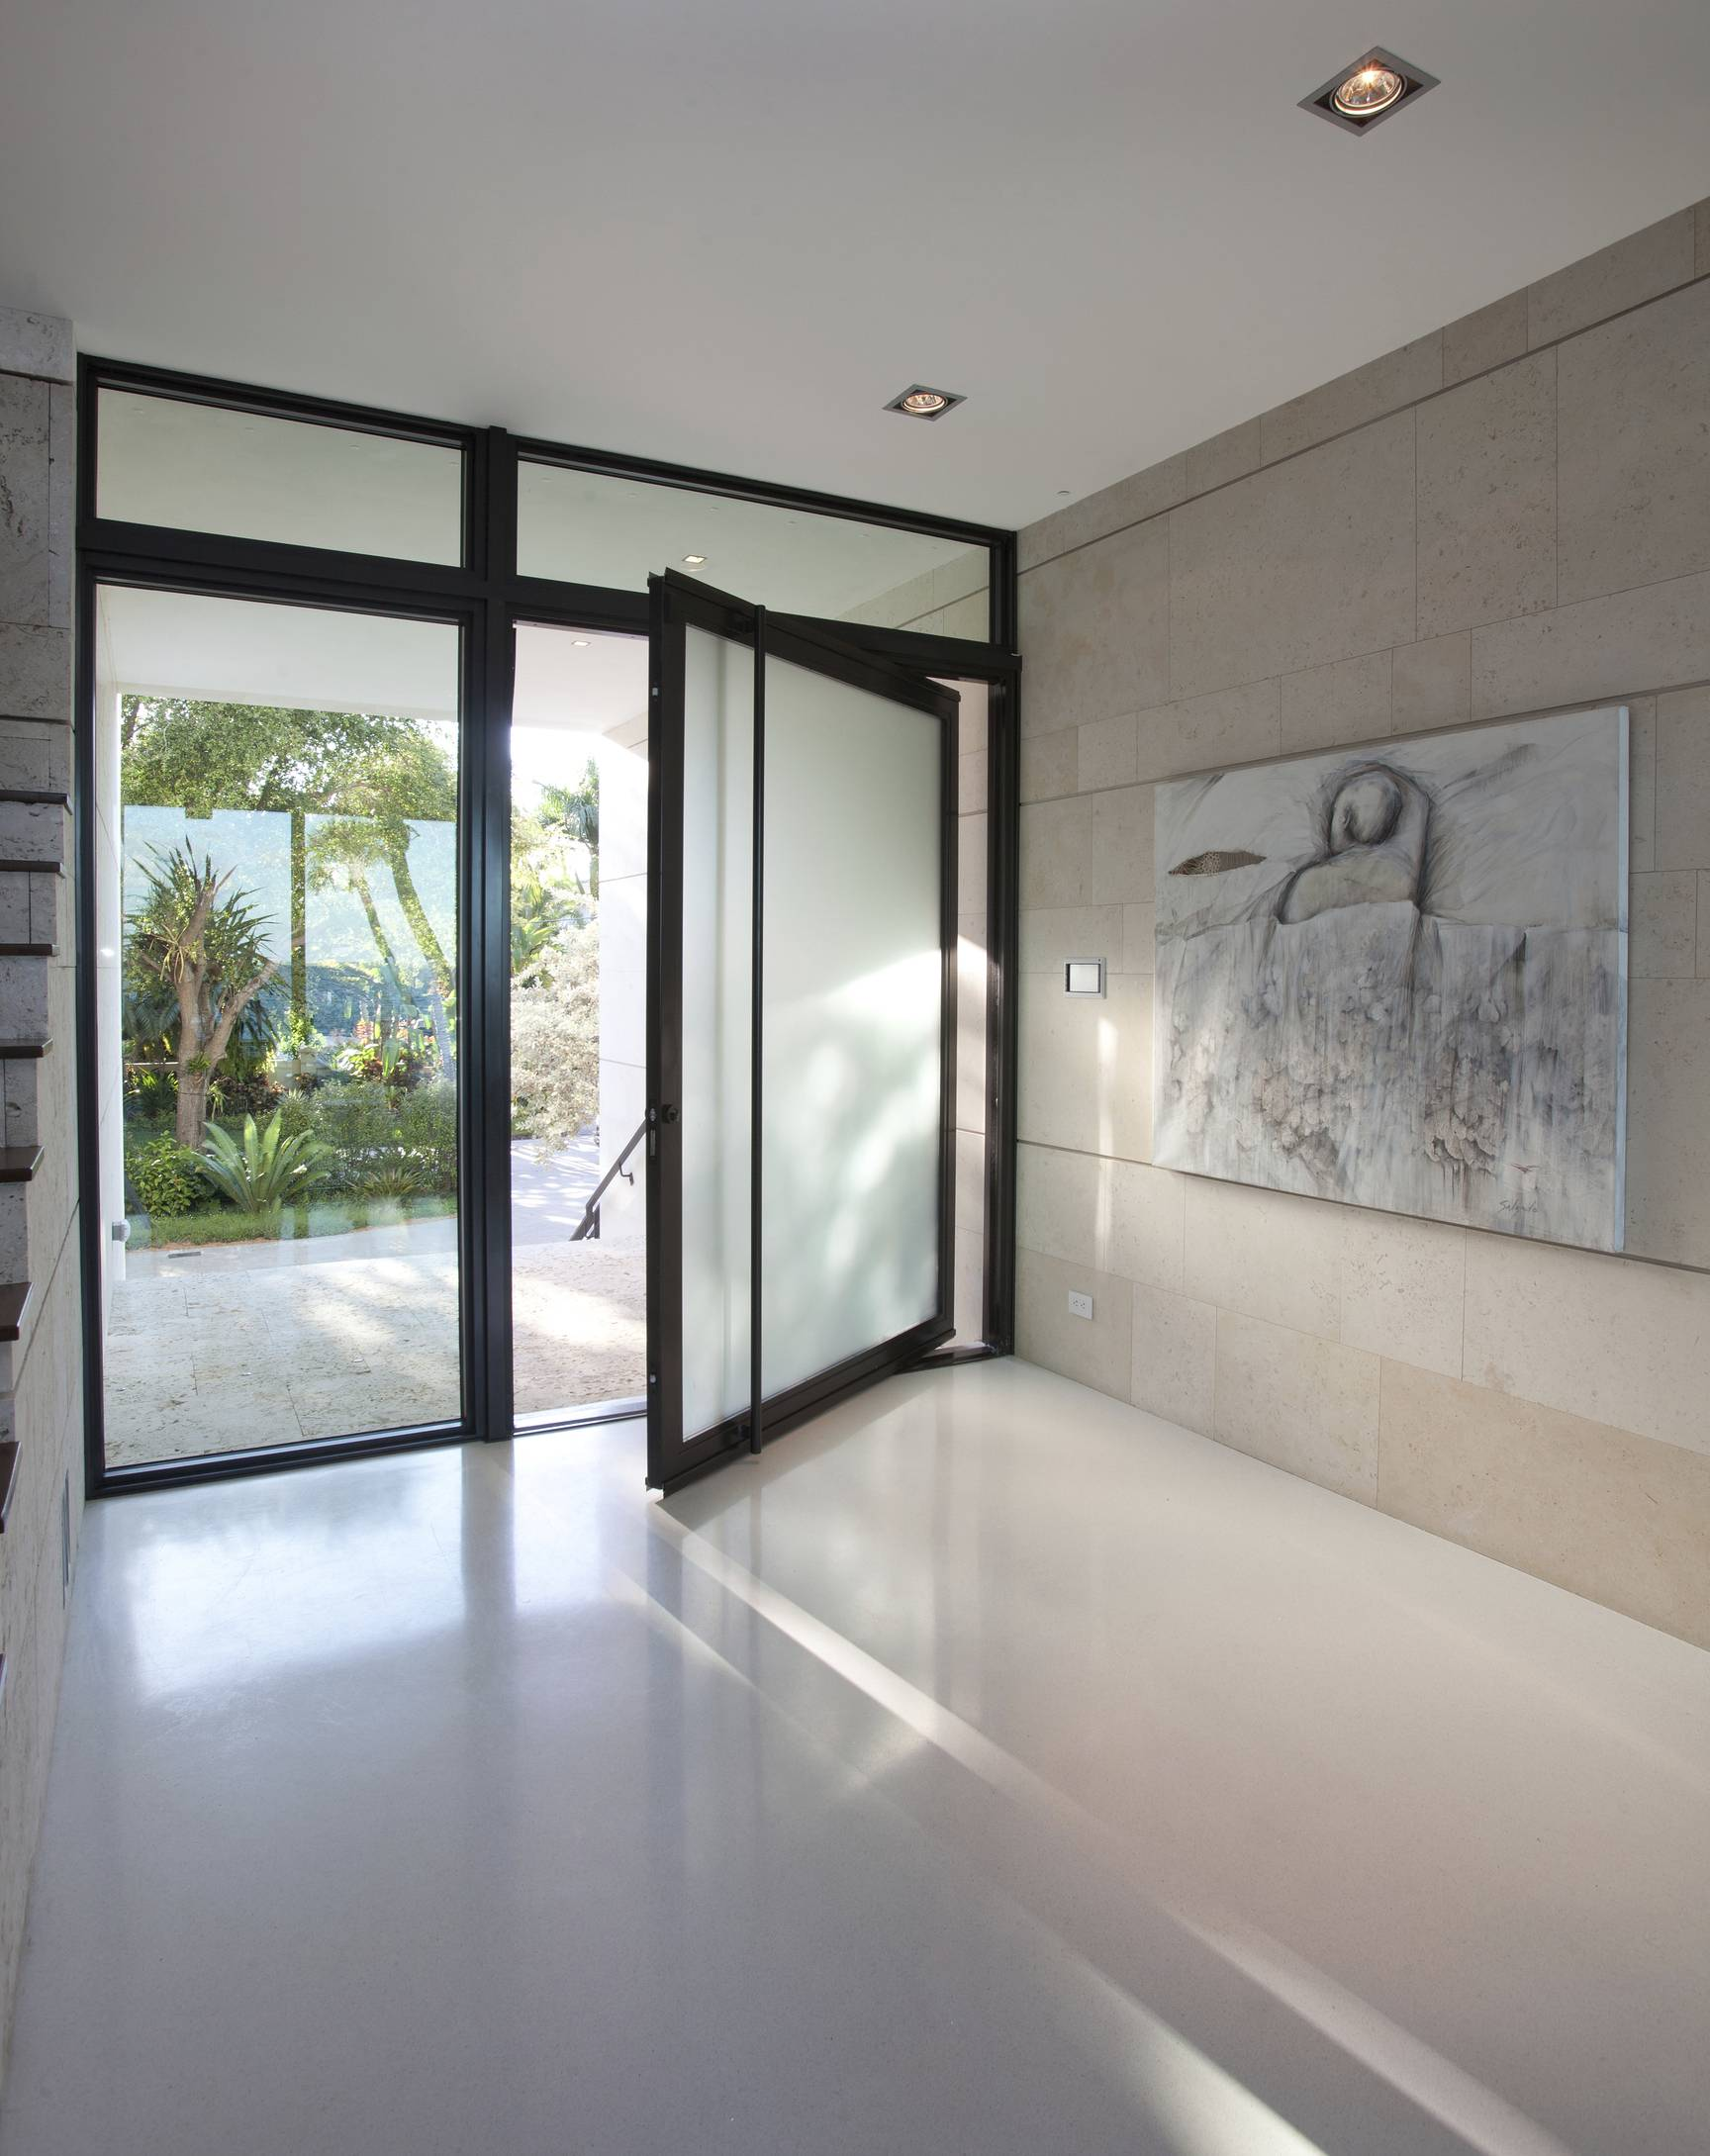 Designer Jacqueline Gonzalez Touzet says terrazzo flooring, as seen in this entryway to a Florida home, is a great choice due to its durability and long-lasting beauty.